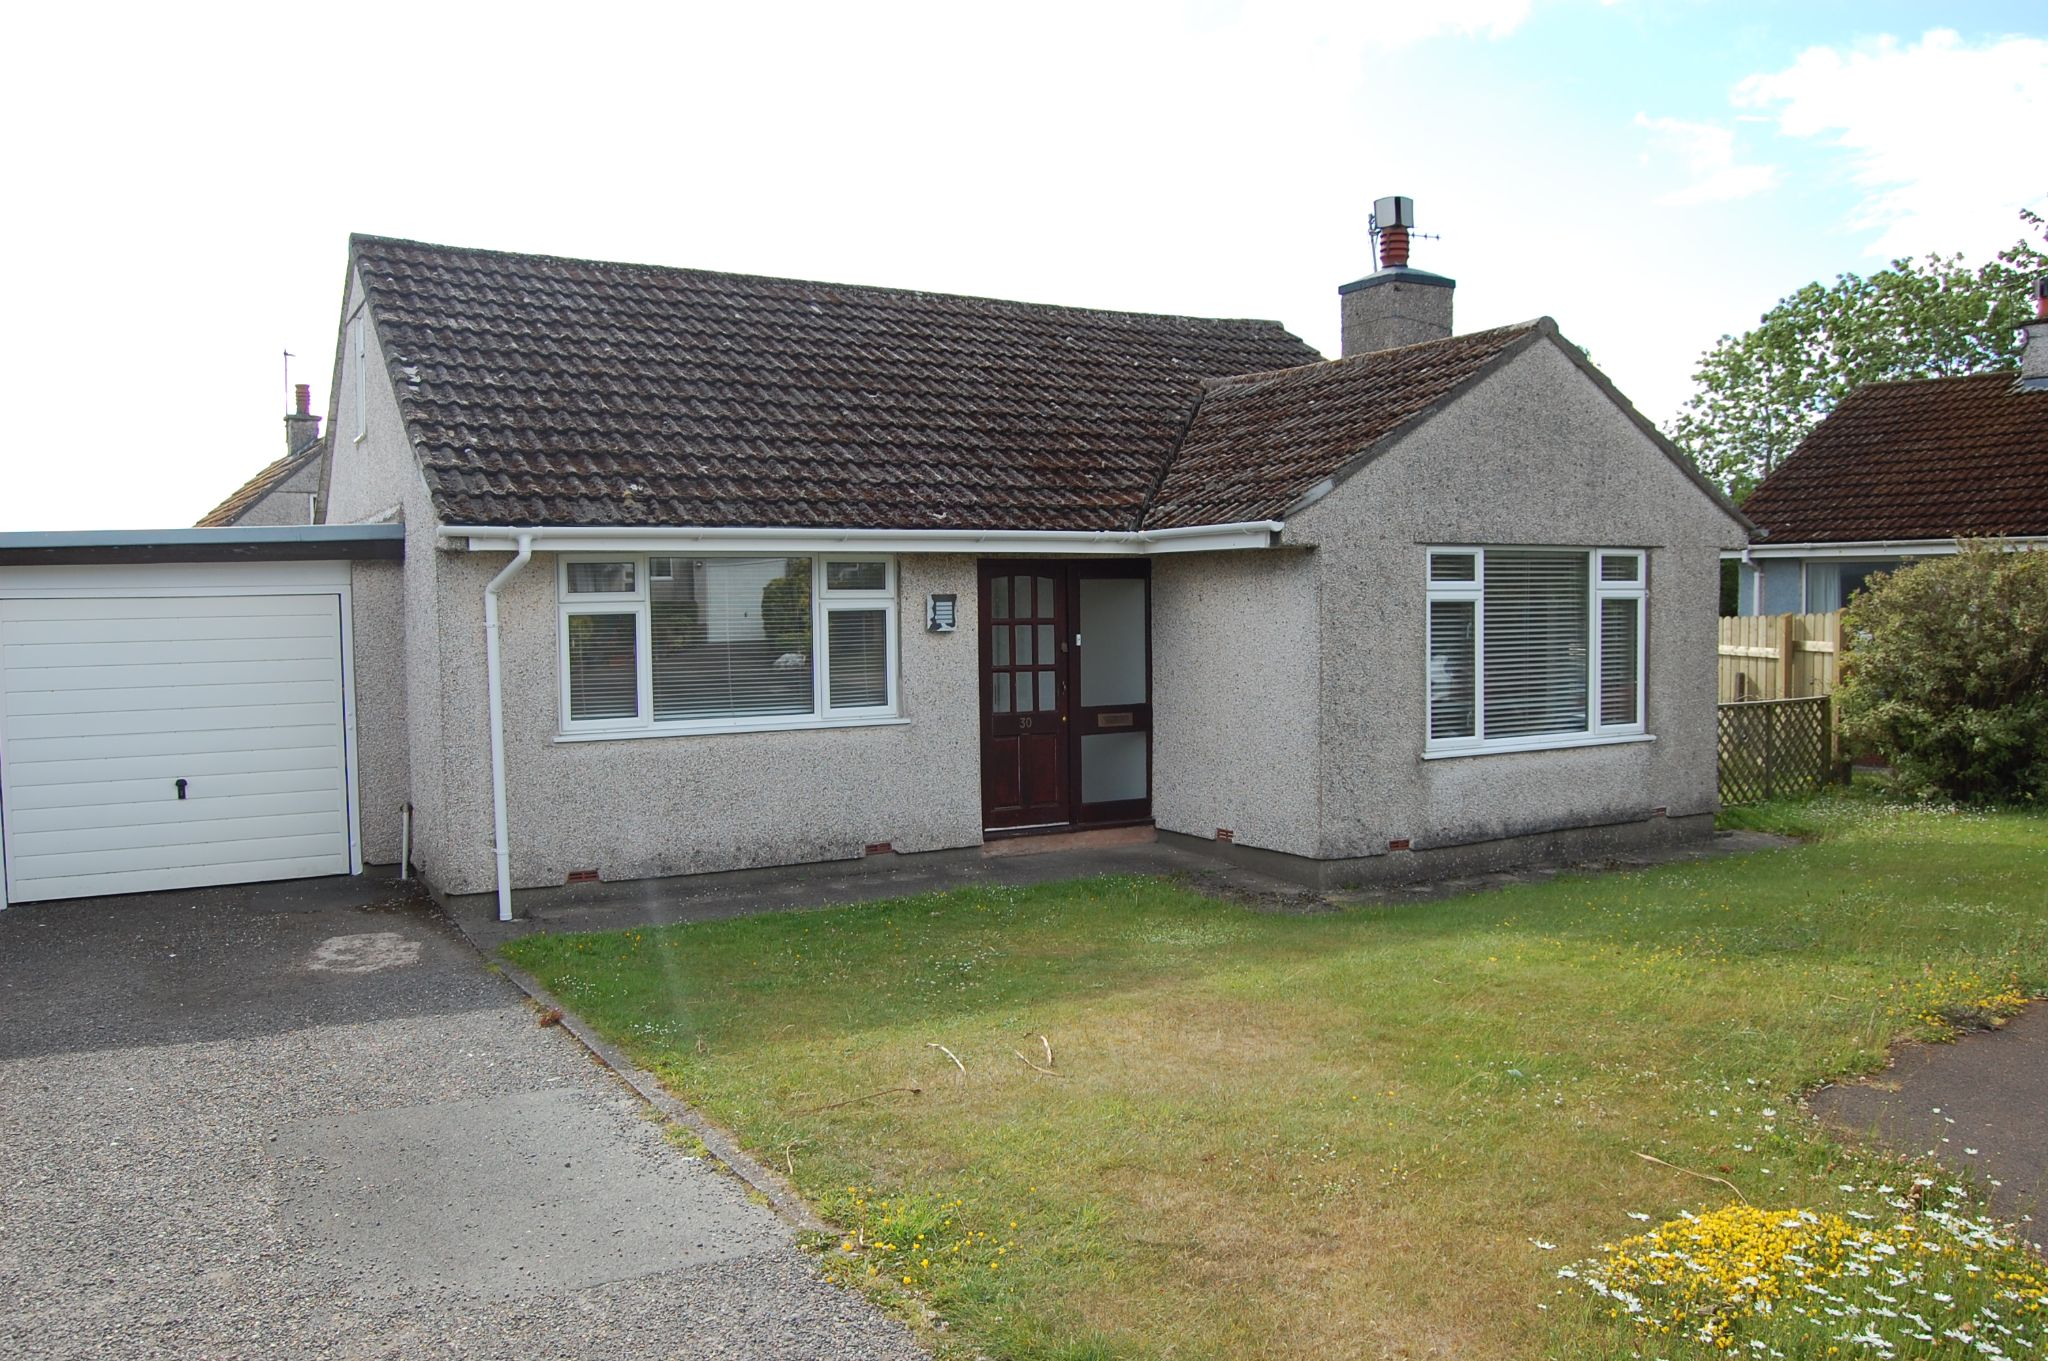 3 bedroom detached bungalow To Let in Onchan - Photograph 1